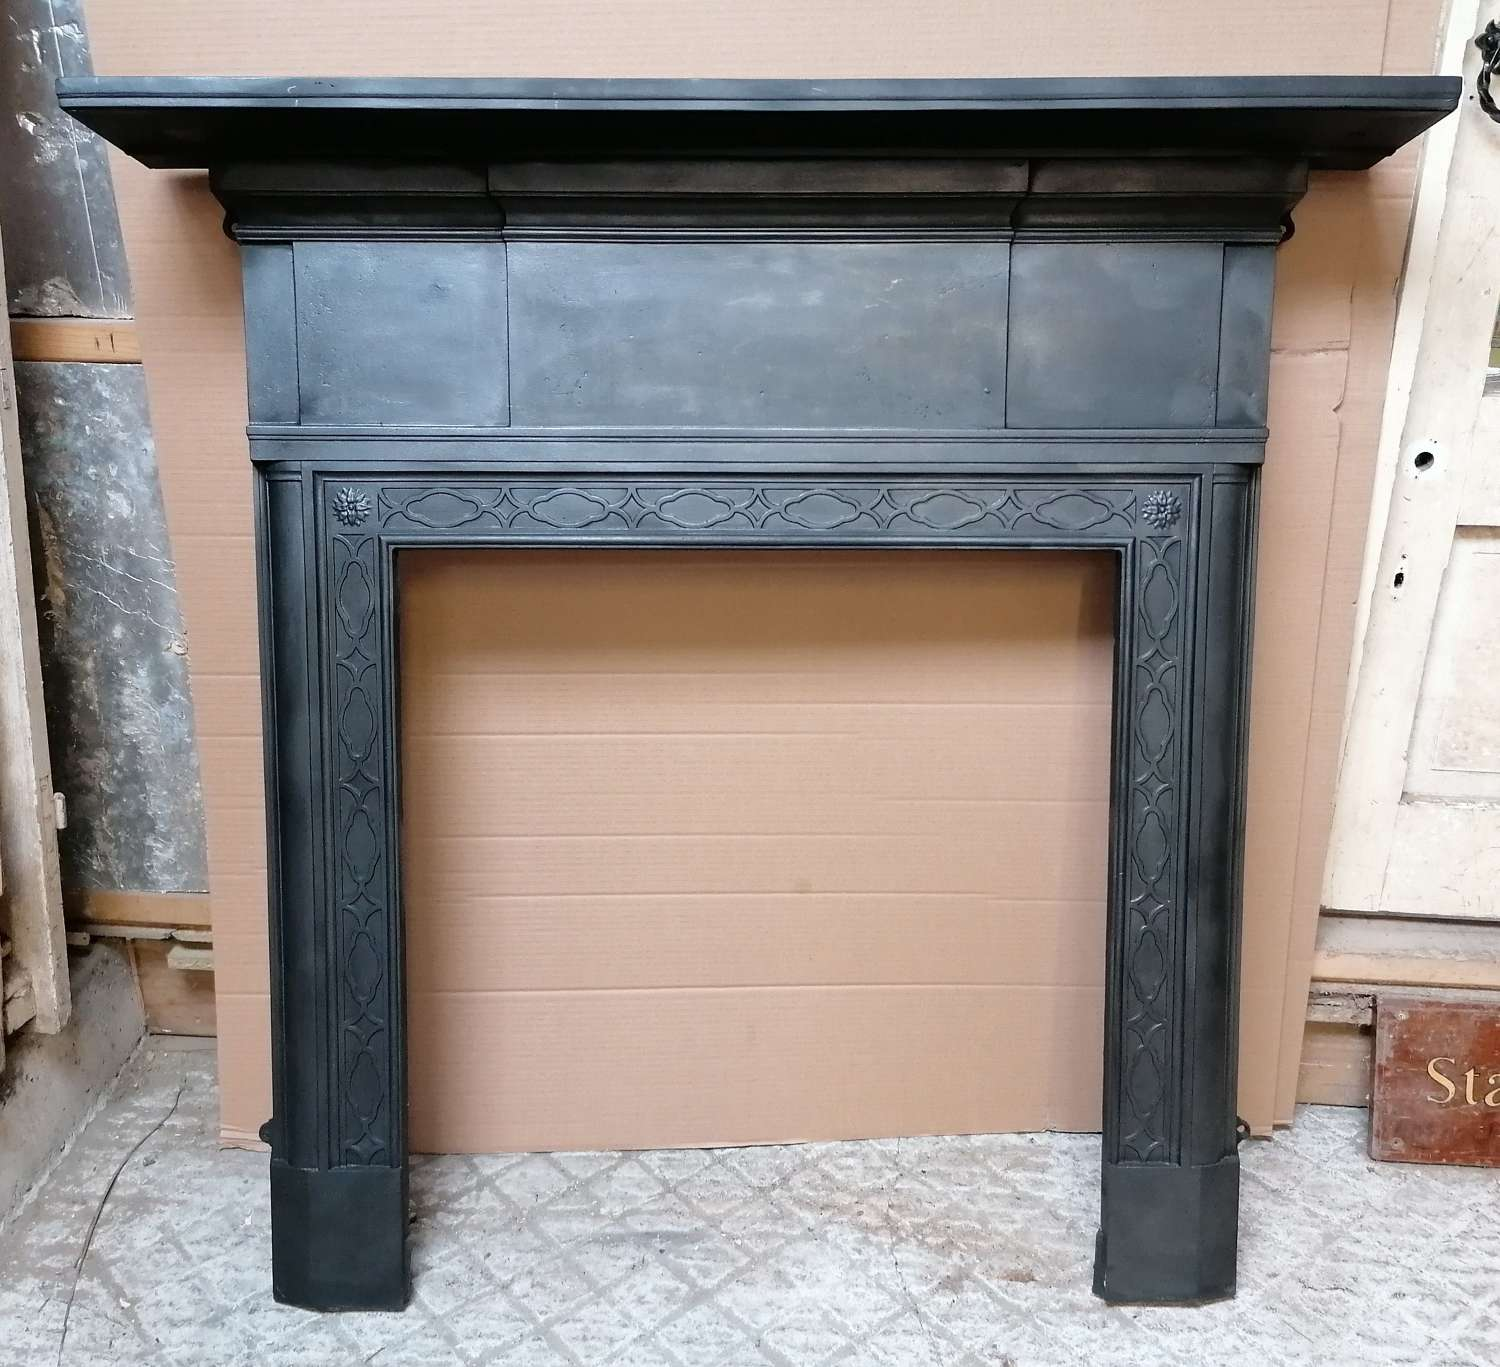 FS0122 PRETTY RECLAIMED ANTIQUE CAST IRON FIRE SURROUND FOR WOODBURNER